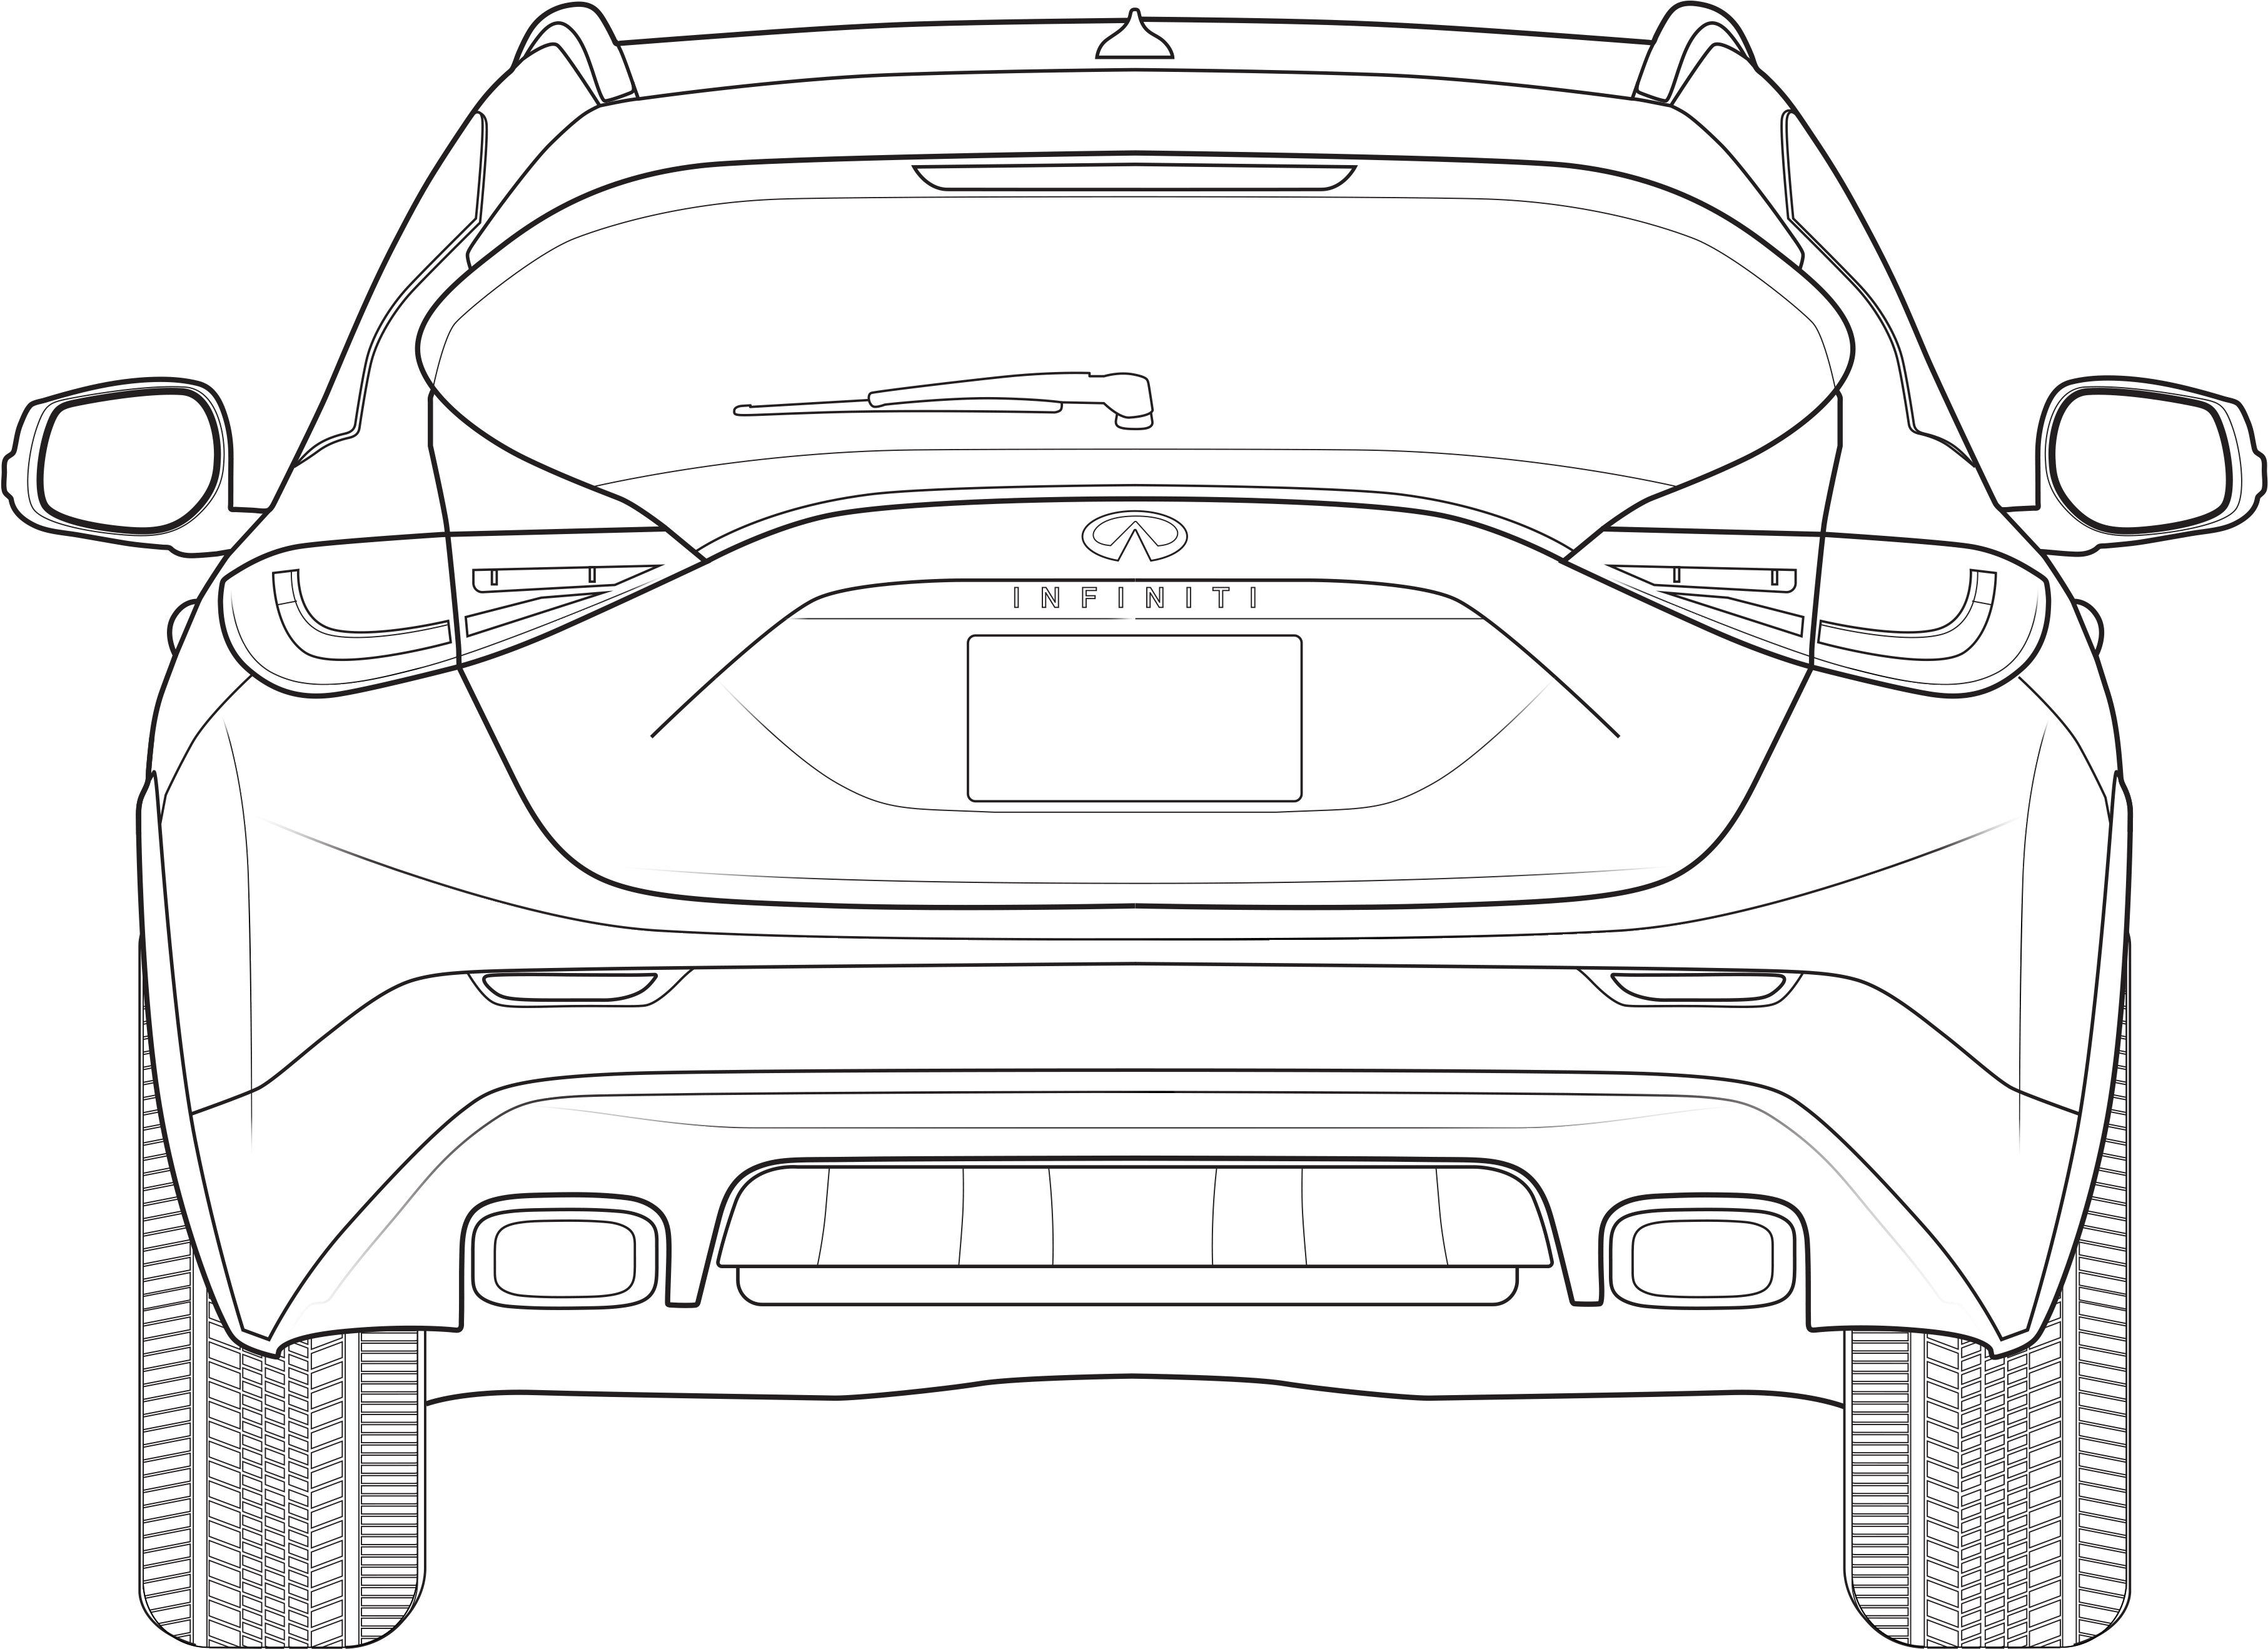 Car Sketch Png In Addition Each Line Drawing Was Turned Into A Cad Line Art 4895937 Vippng